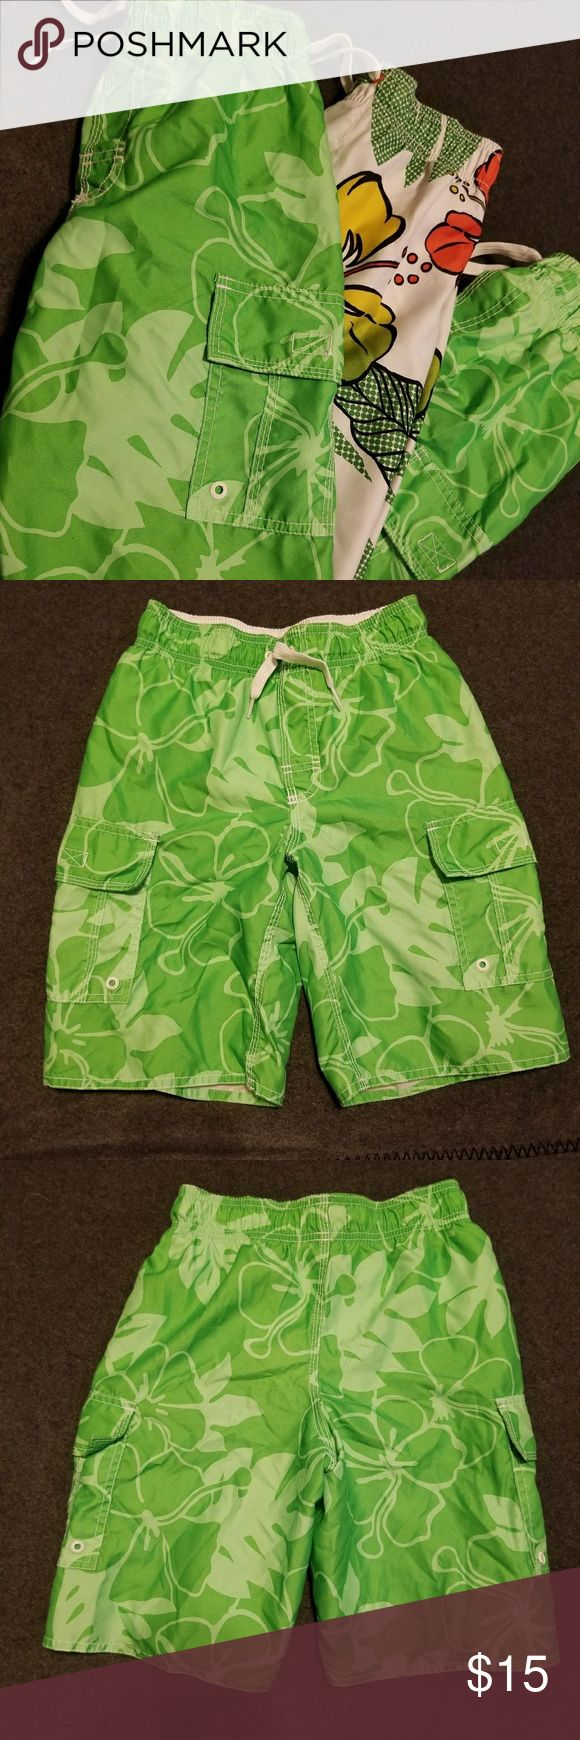 Old Navy Boys Swim Trunk Lot This listing includes 3 pairs of Old Navy boys swim trunks. 2 pairs - green. 1 pair - white with green and orange flowers. All are boys size medium (8). GUC Old Navy Swim Swim Trunks